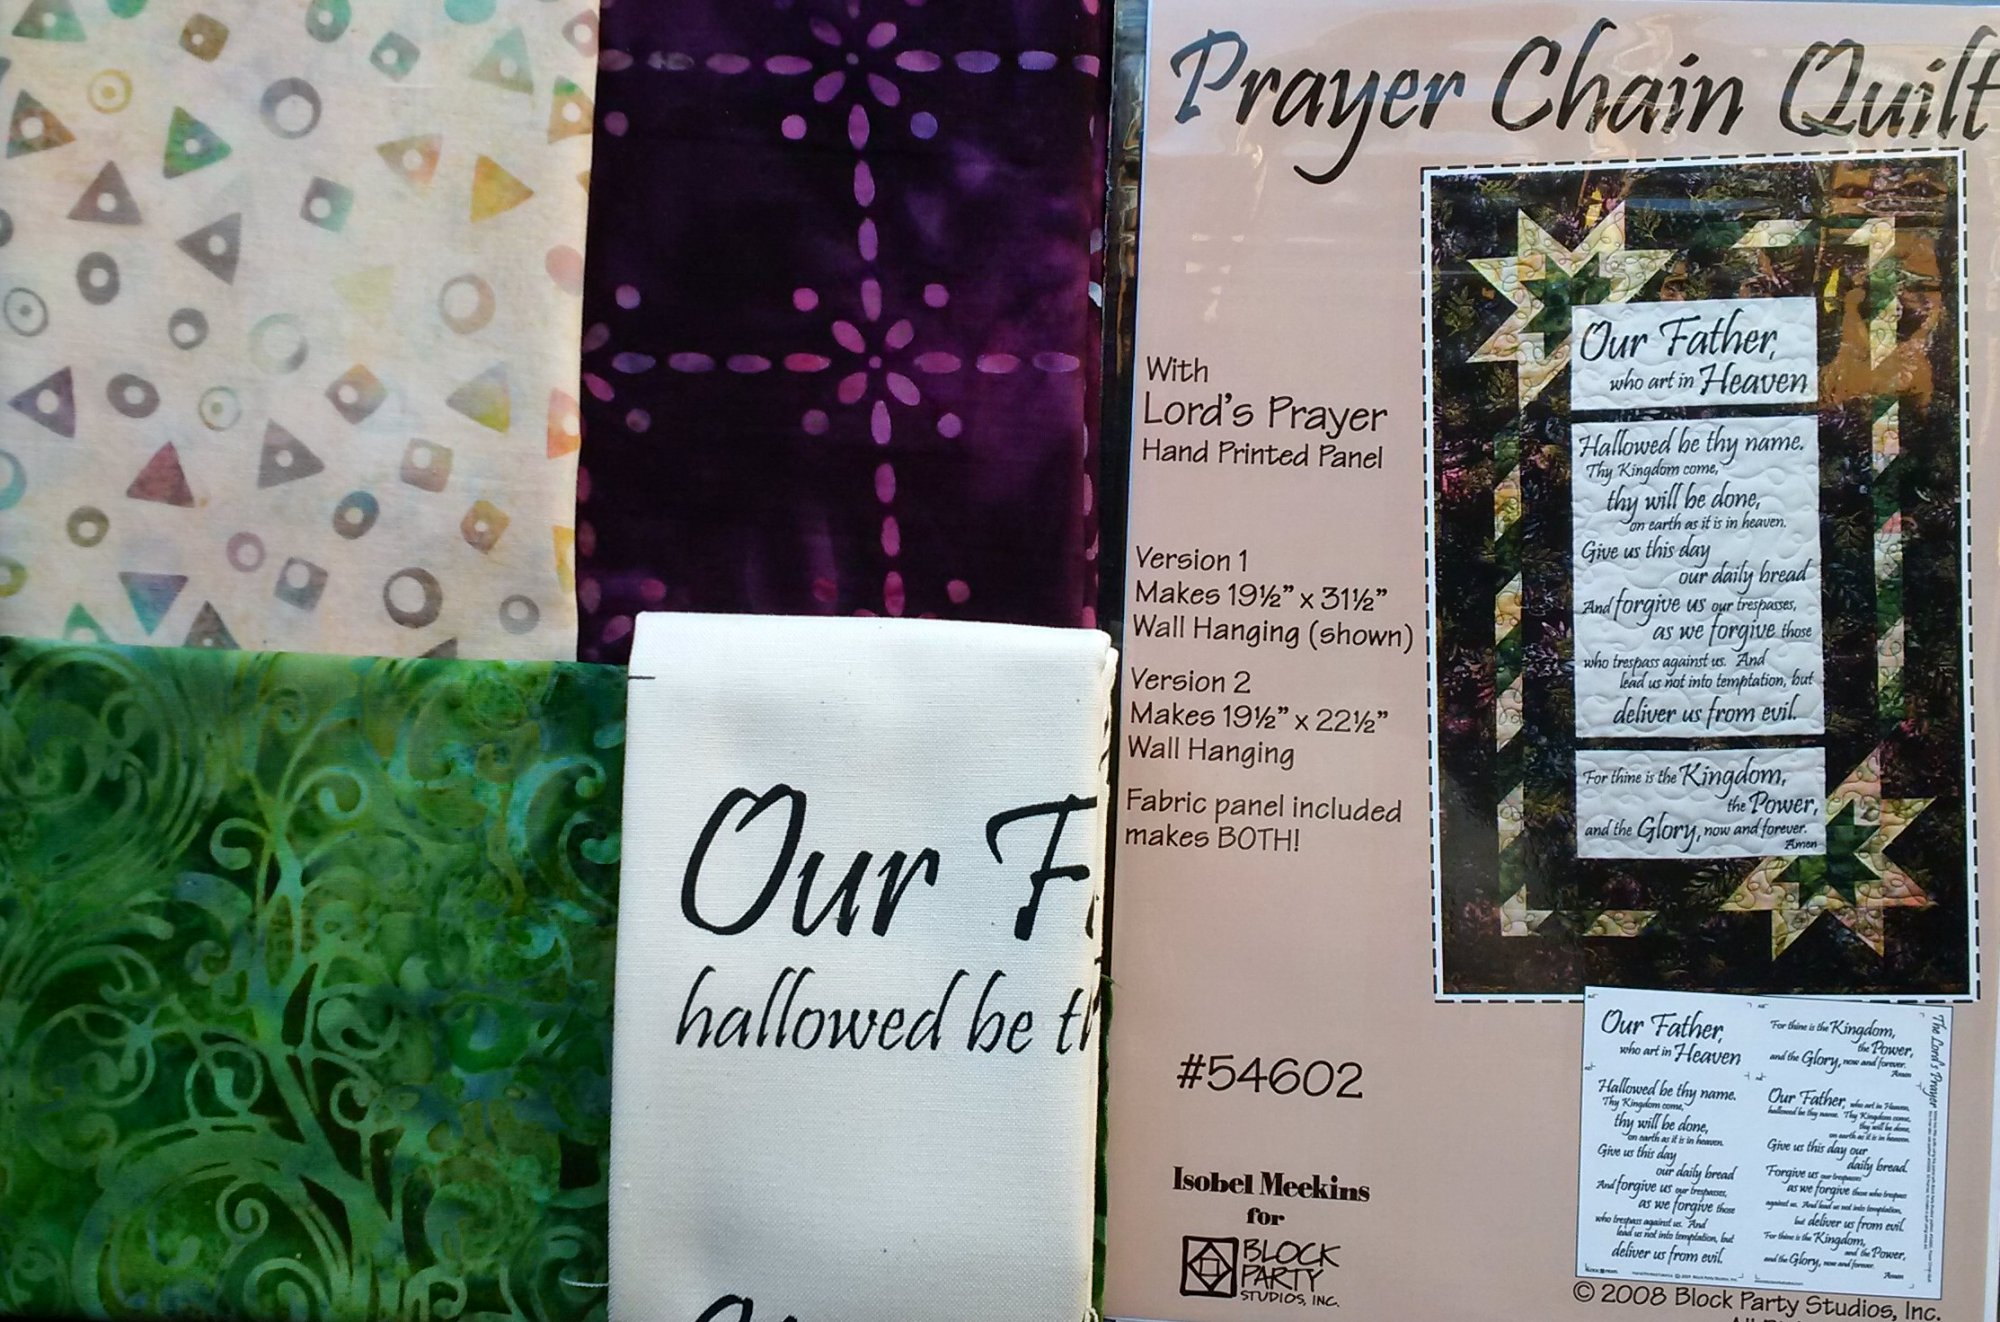 Prayer Chain Quilt Kit w/ Lord's Prayer